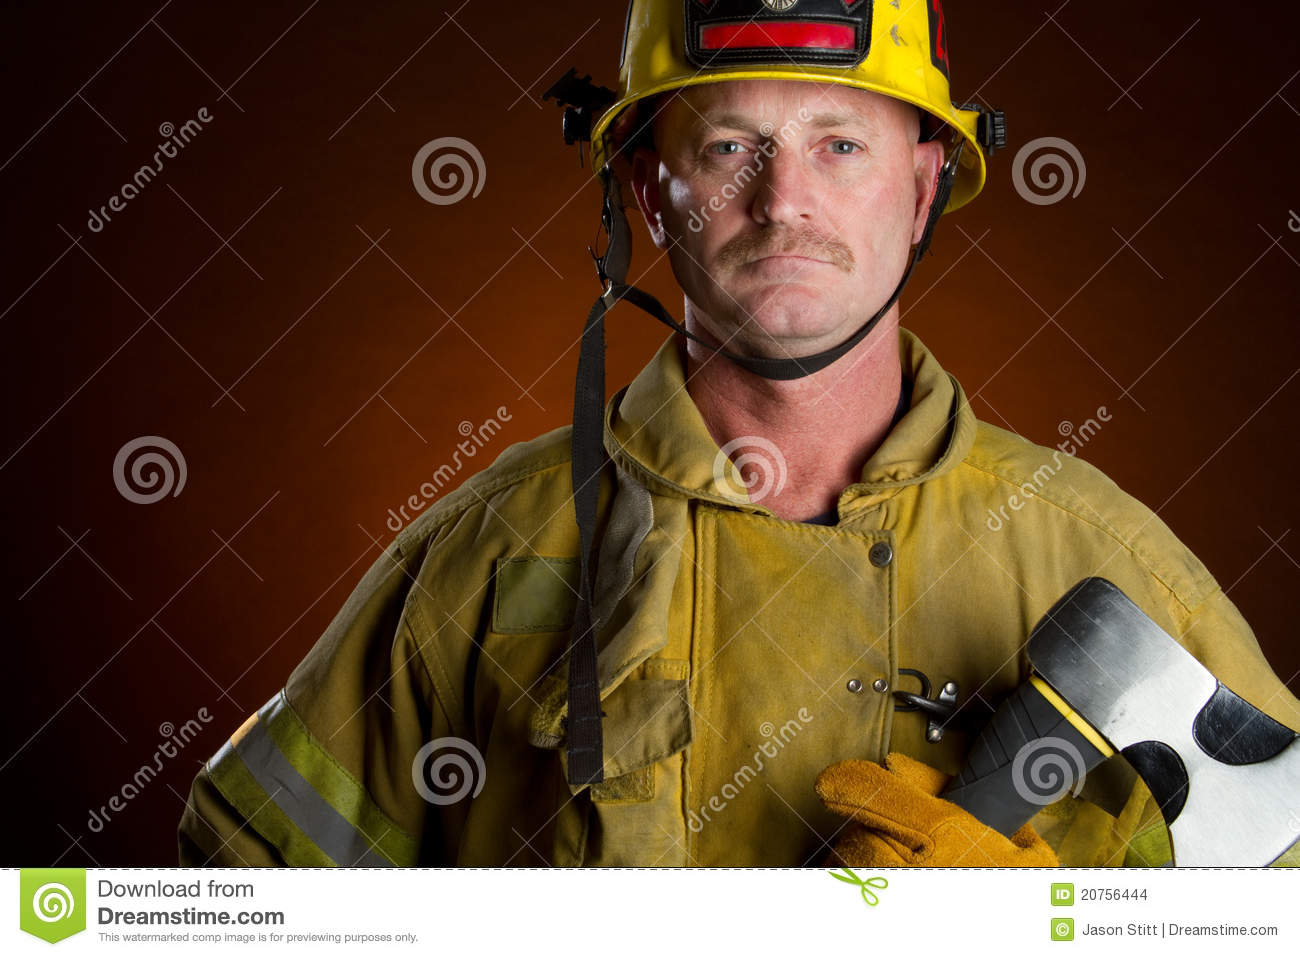 firefighter facial hair policy